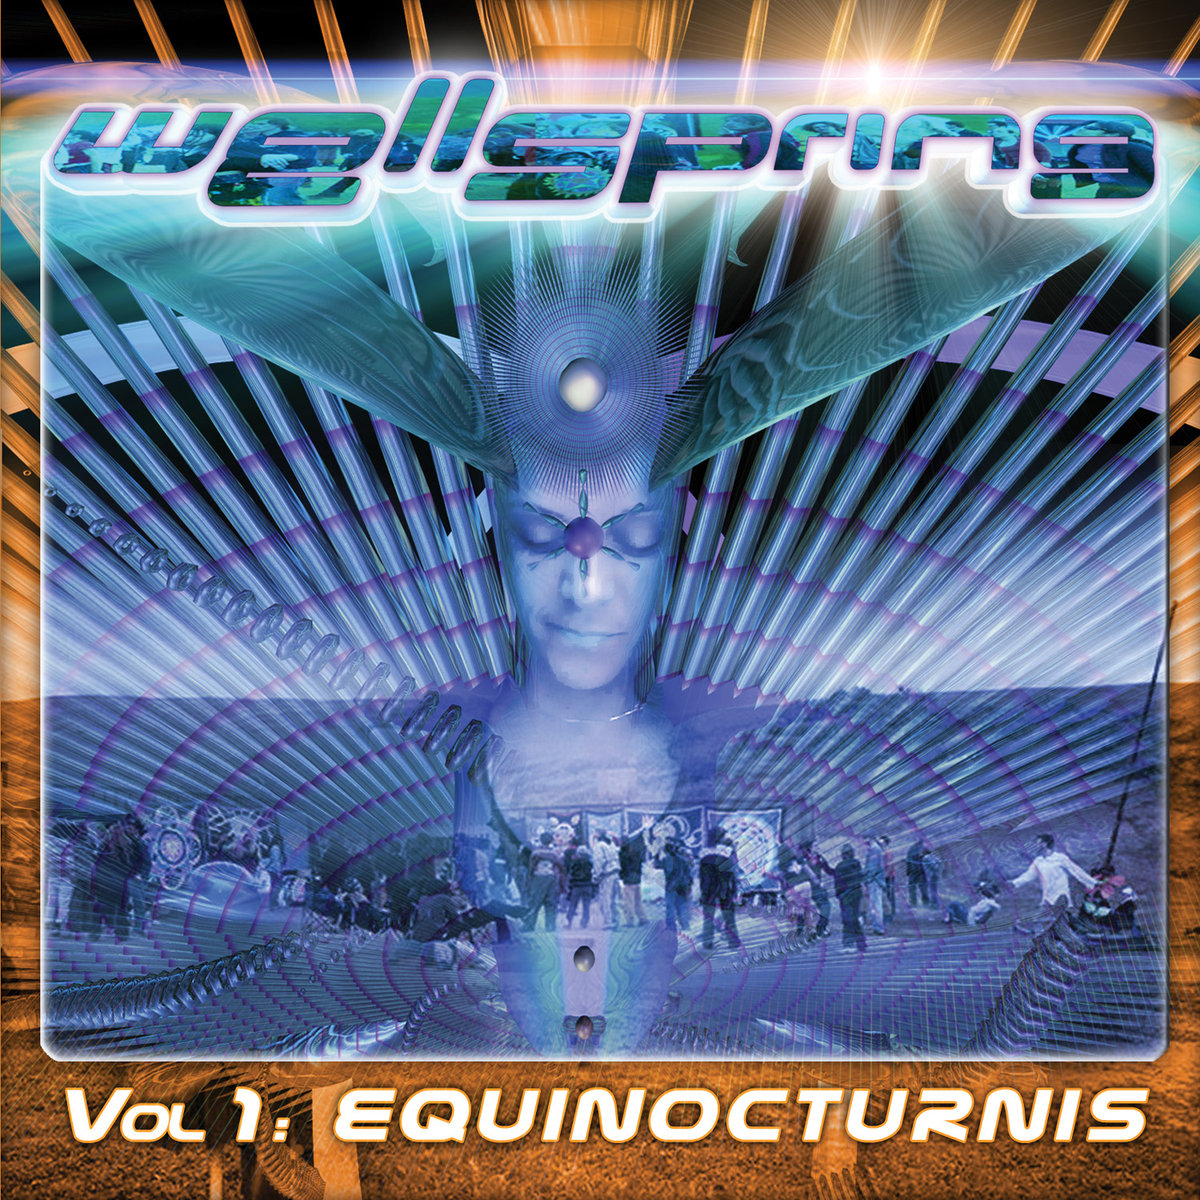 Aeon - There For Party @ 'Various Artists - Wellspring Vol. 1: Equinocturnis' album (electronic, goa)